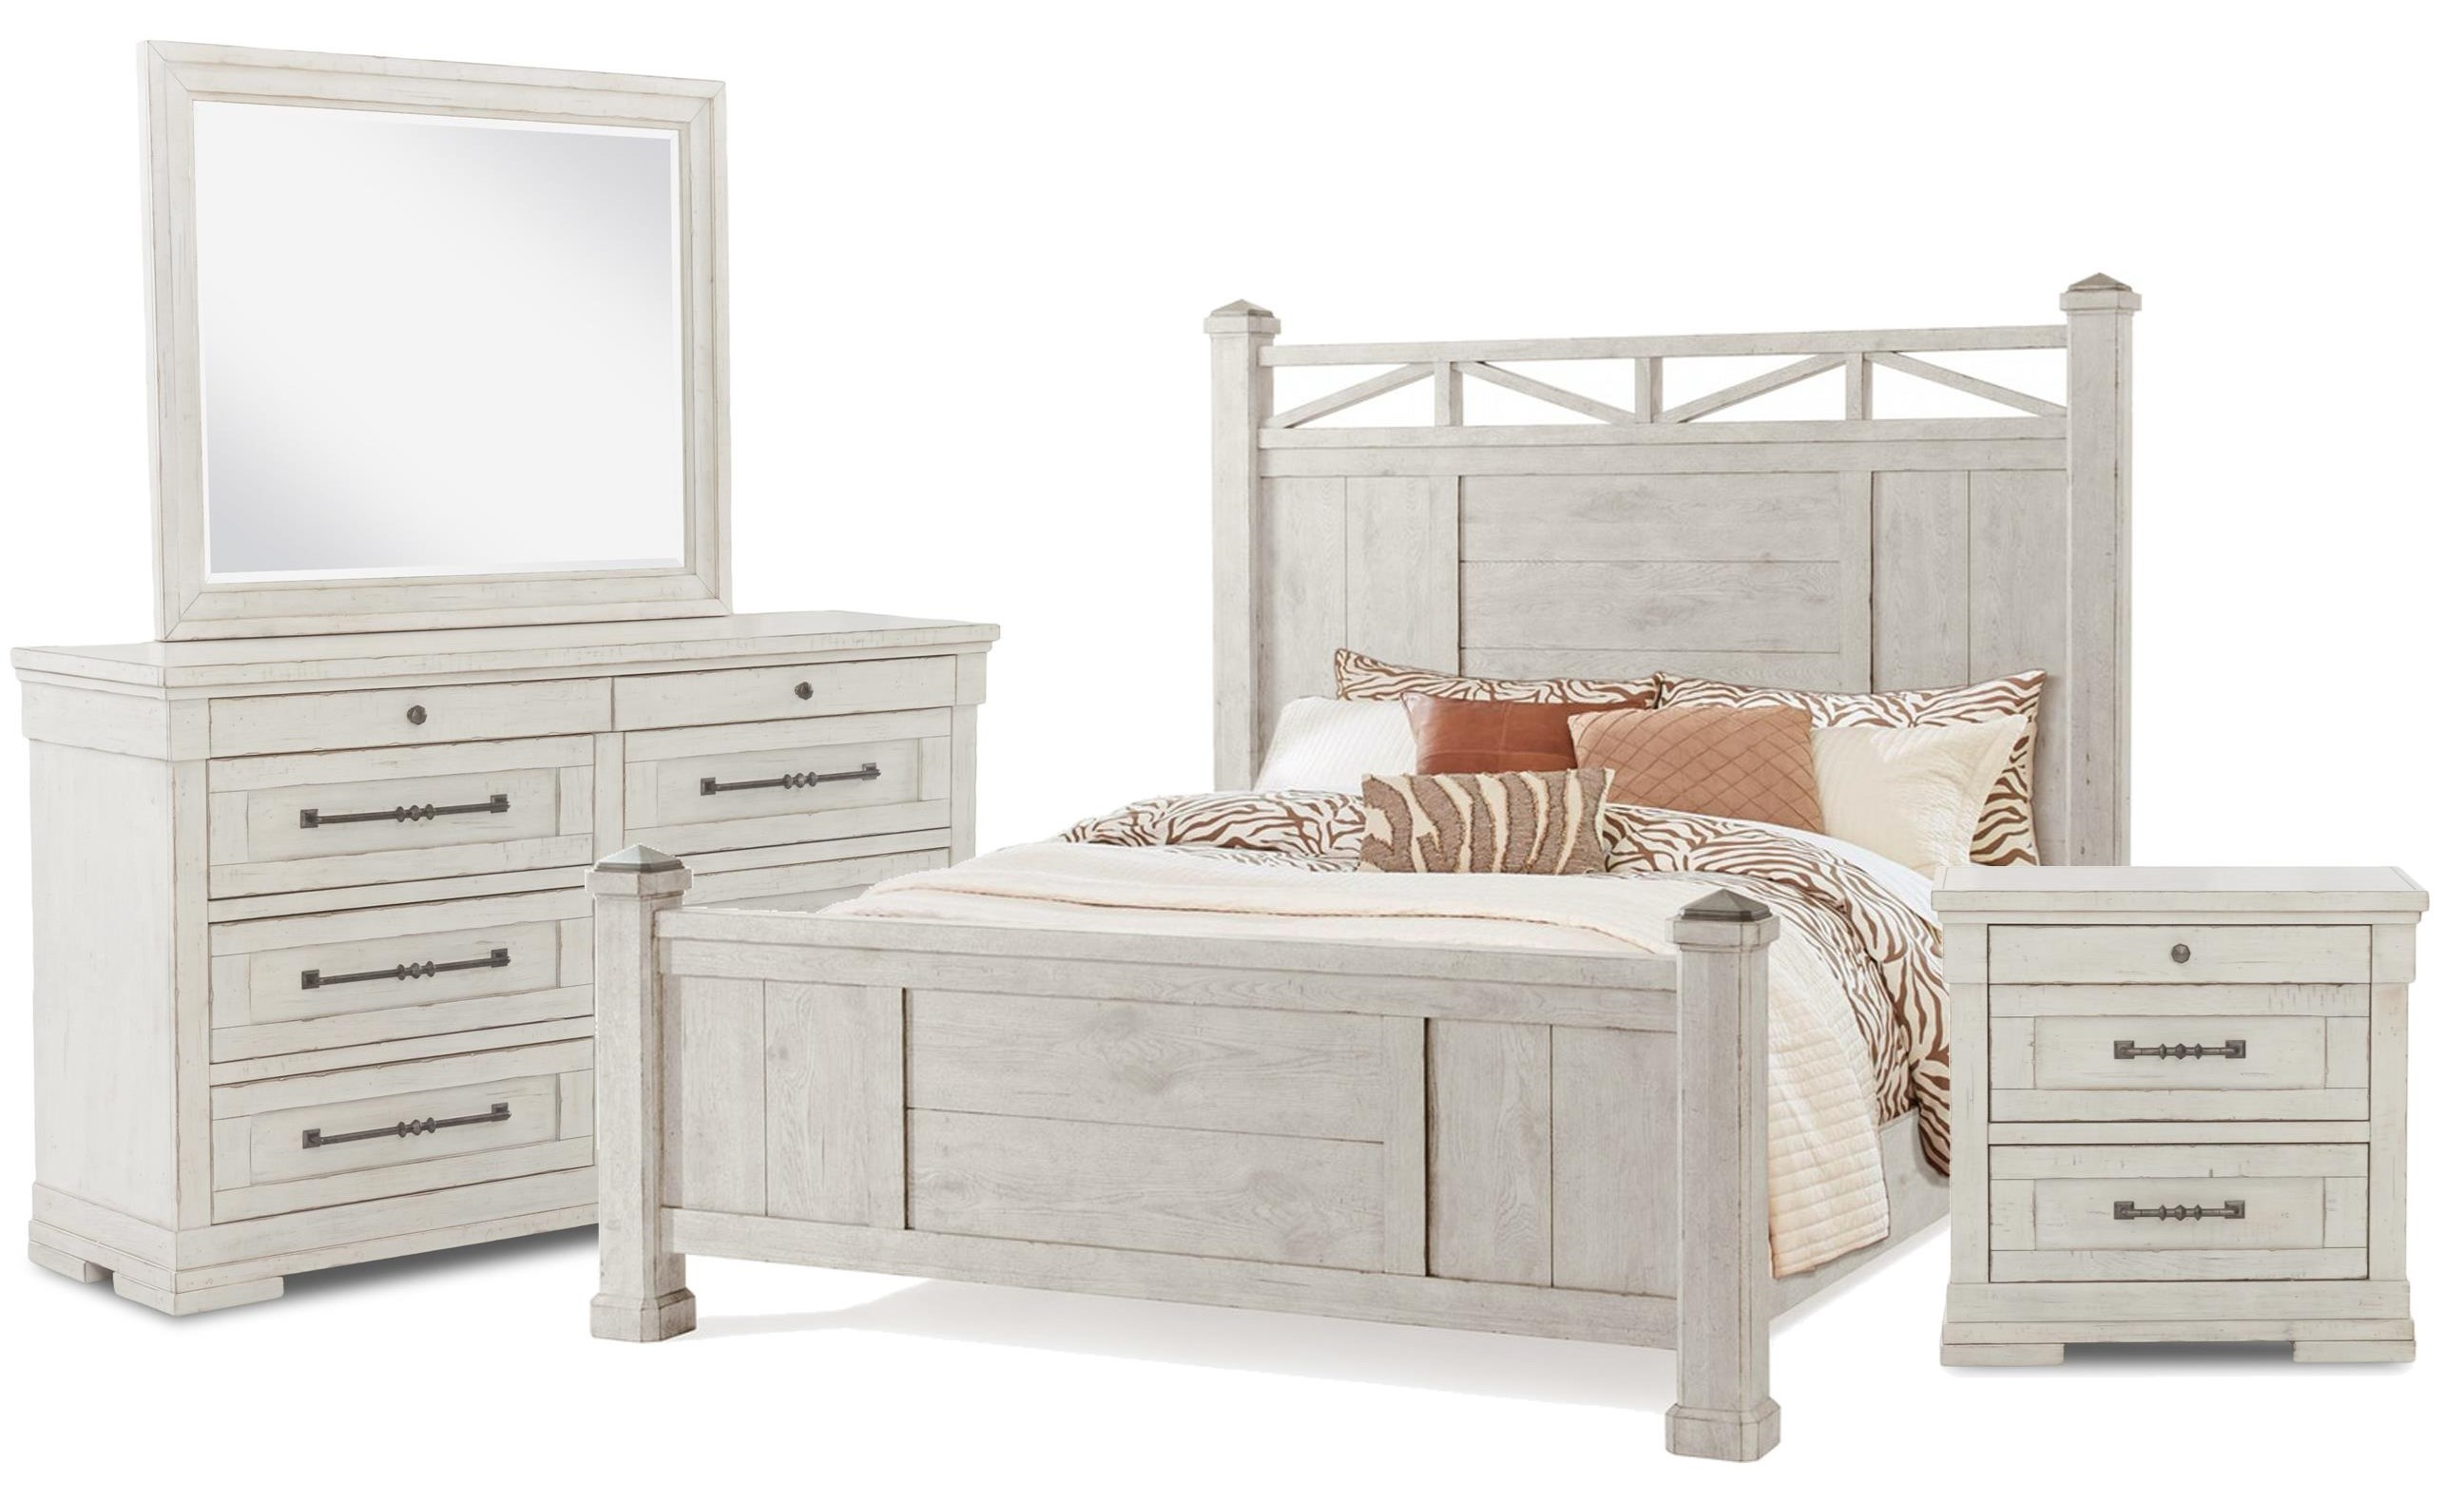 Coming Home King Bed, Dresser, Mirror, Nightstand by Trisha Yearwood Home Collection by Klaussner at Johnny Janosik